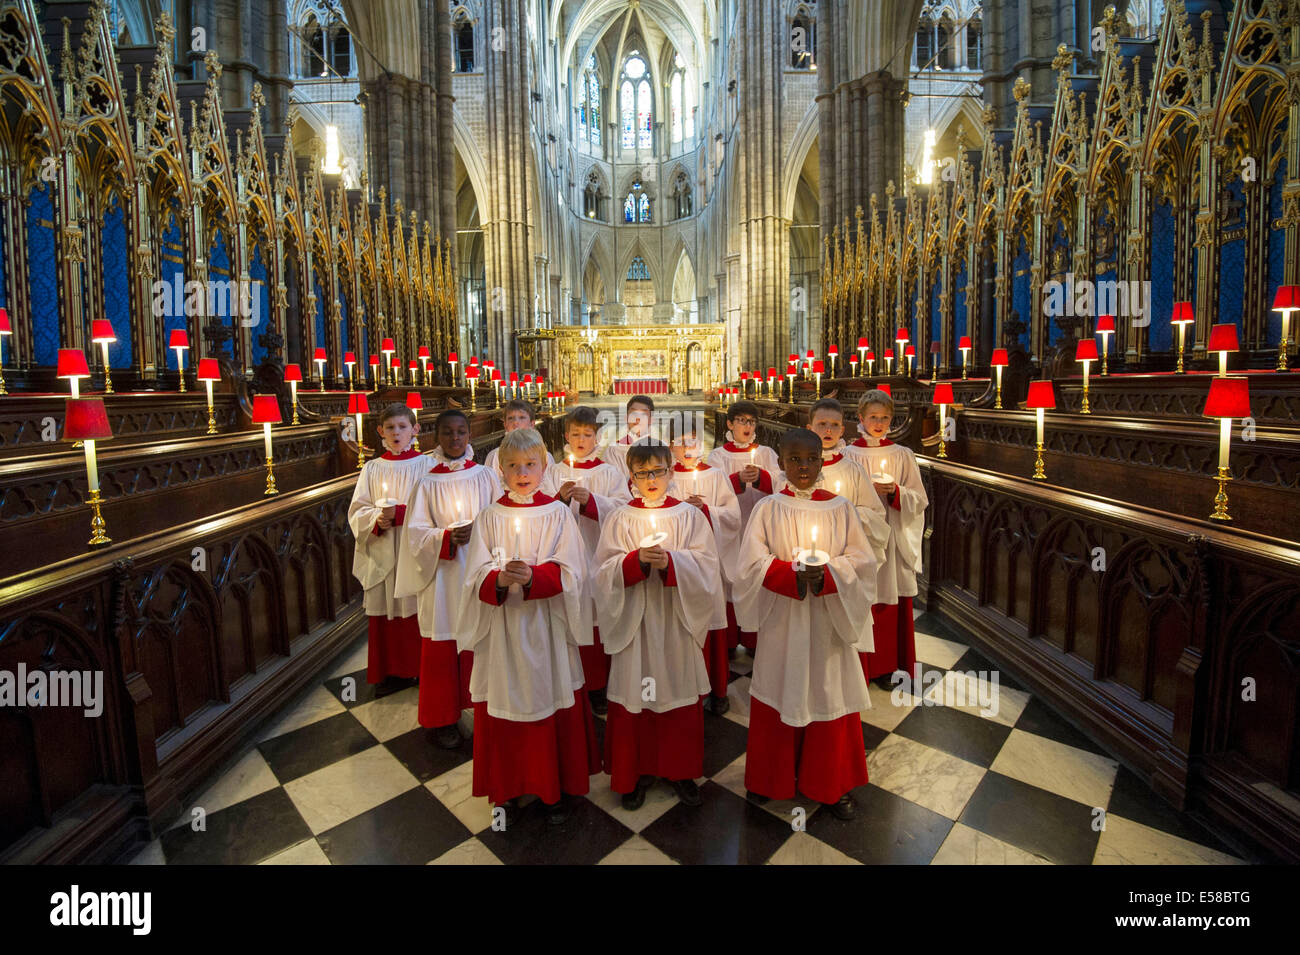 Westminster Abbey.Pic Shows Choir boys from Westminster Abbey rehearsing ahead of the Christmas events - Stock Image